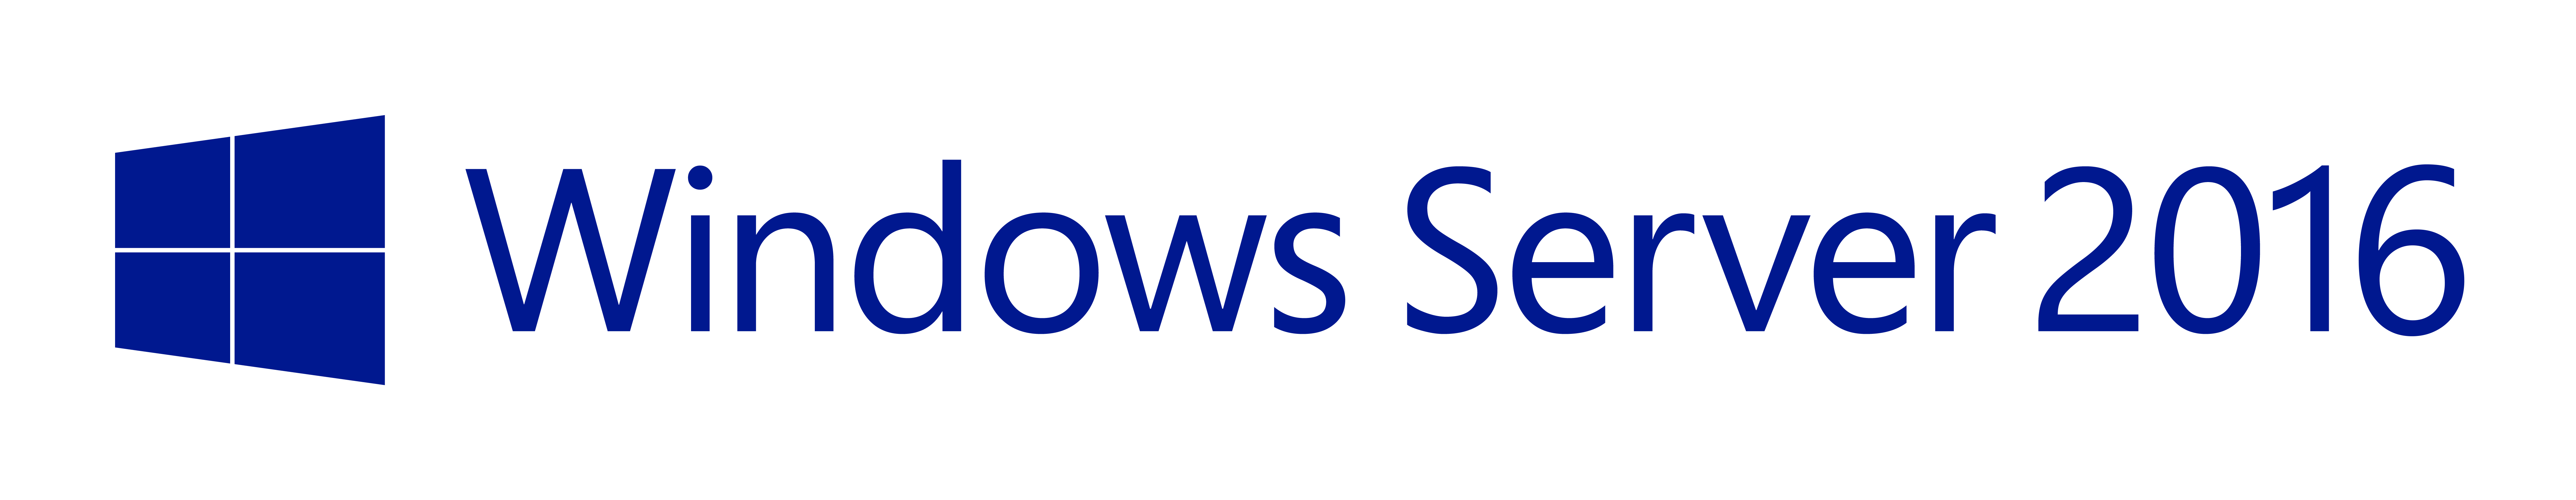 Logo_MOC 20741A / 20741B: Networking with Windows Server 2016